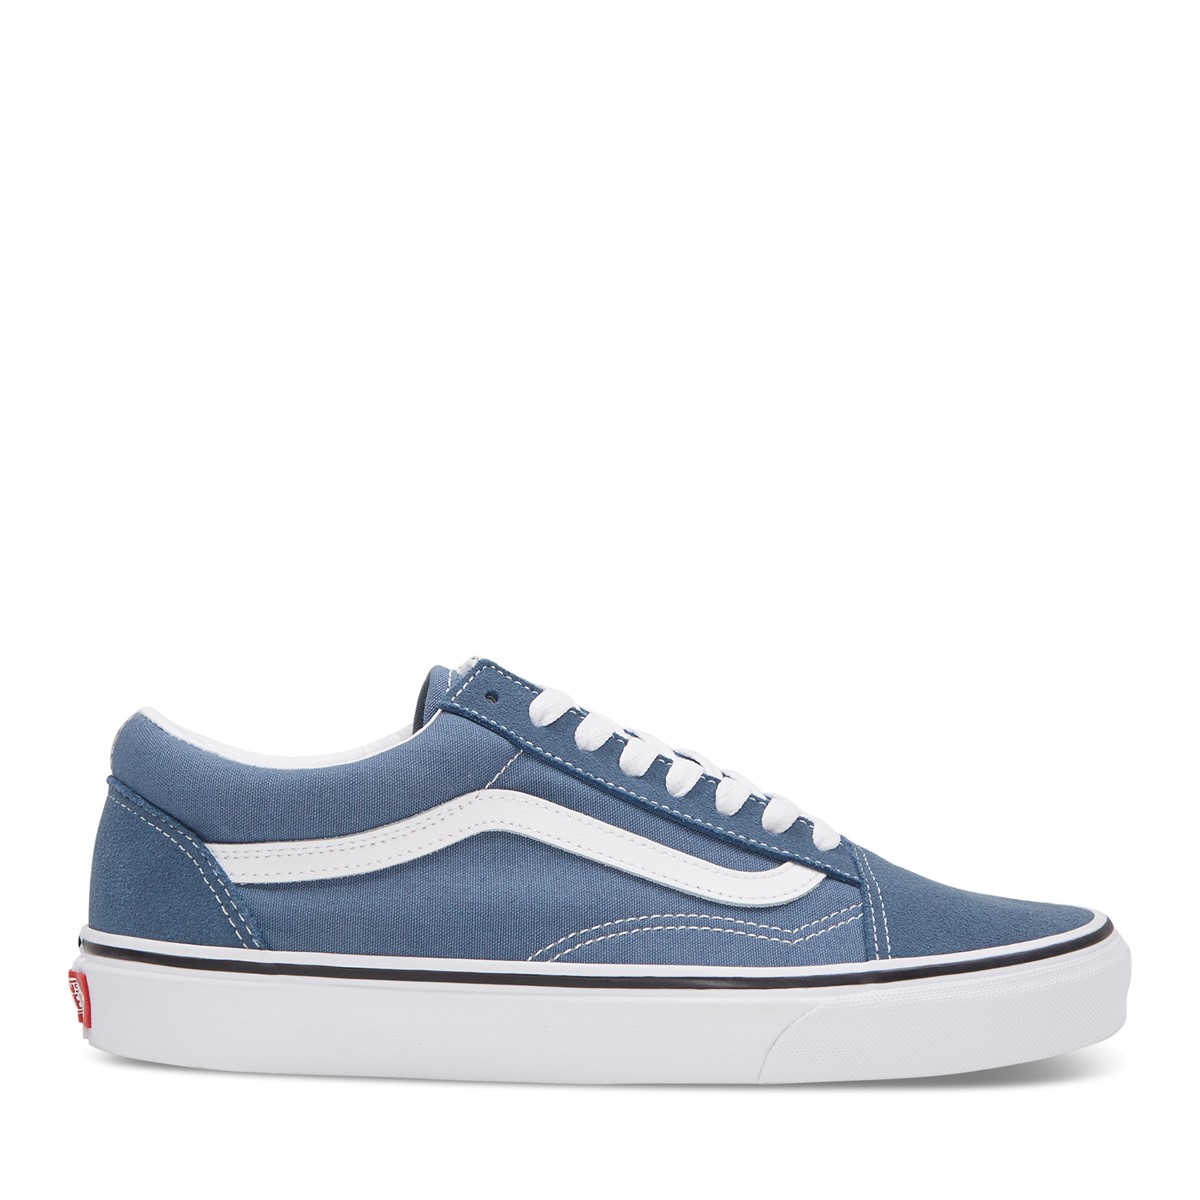 Men's Old Skool Sneakers in Blue